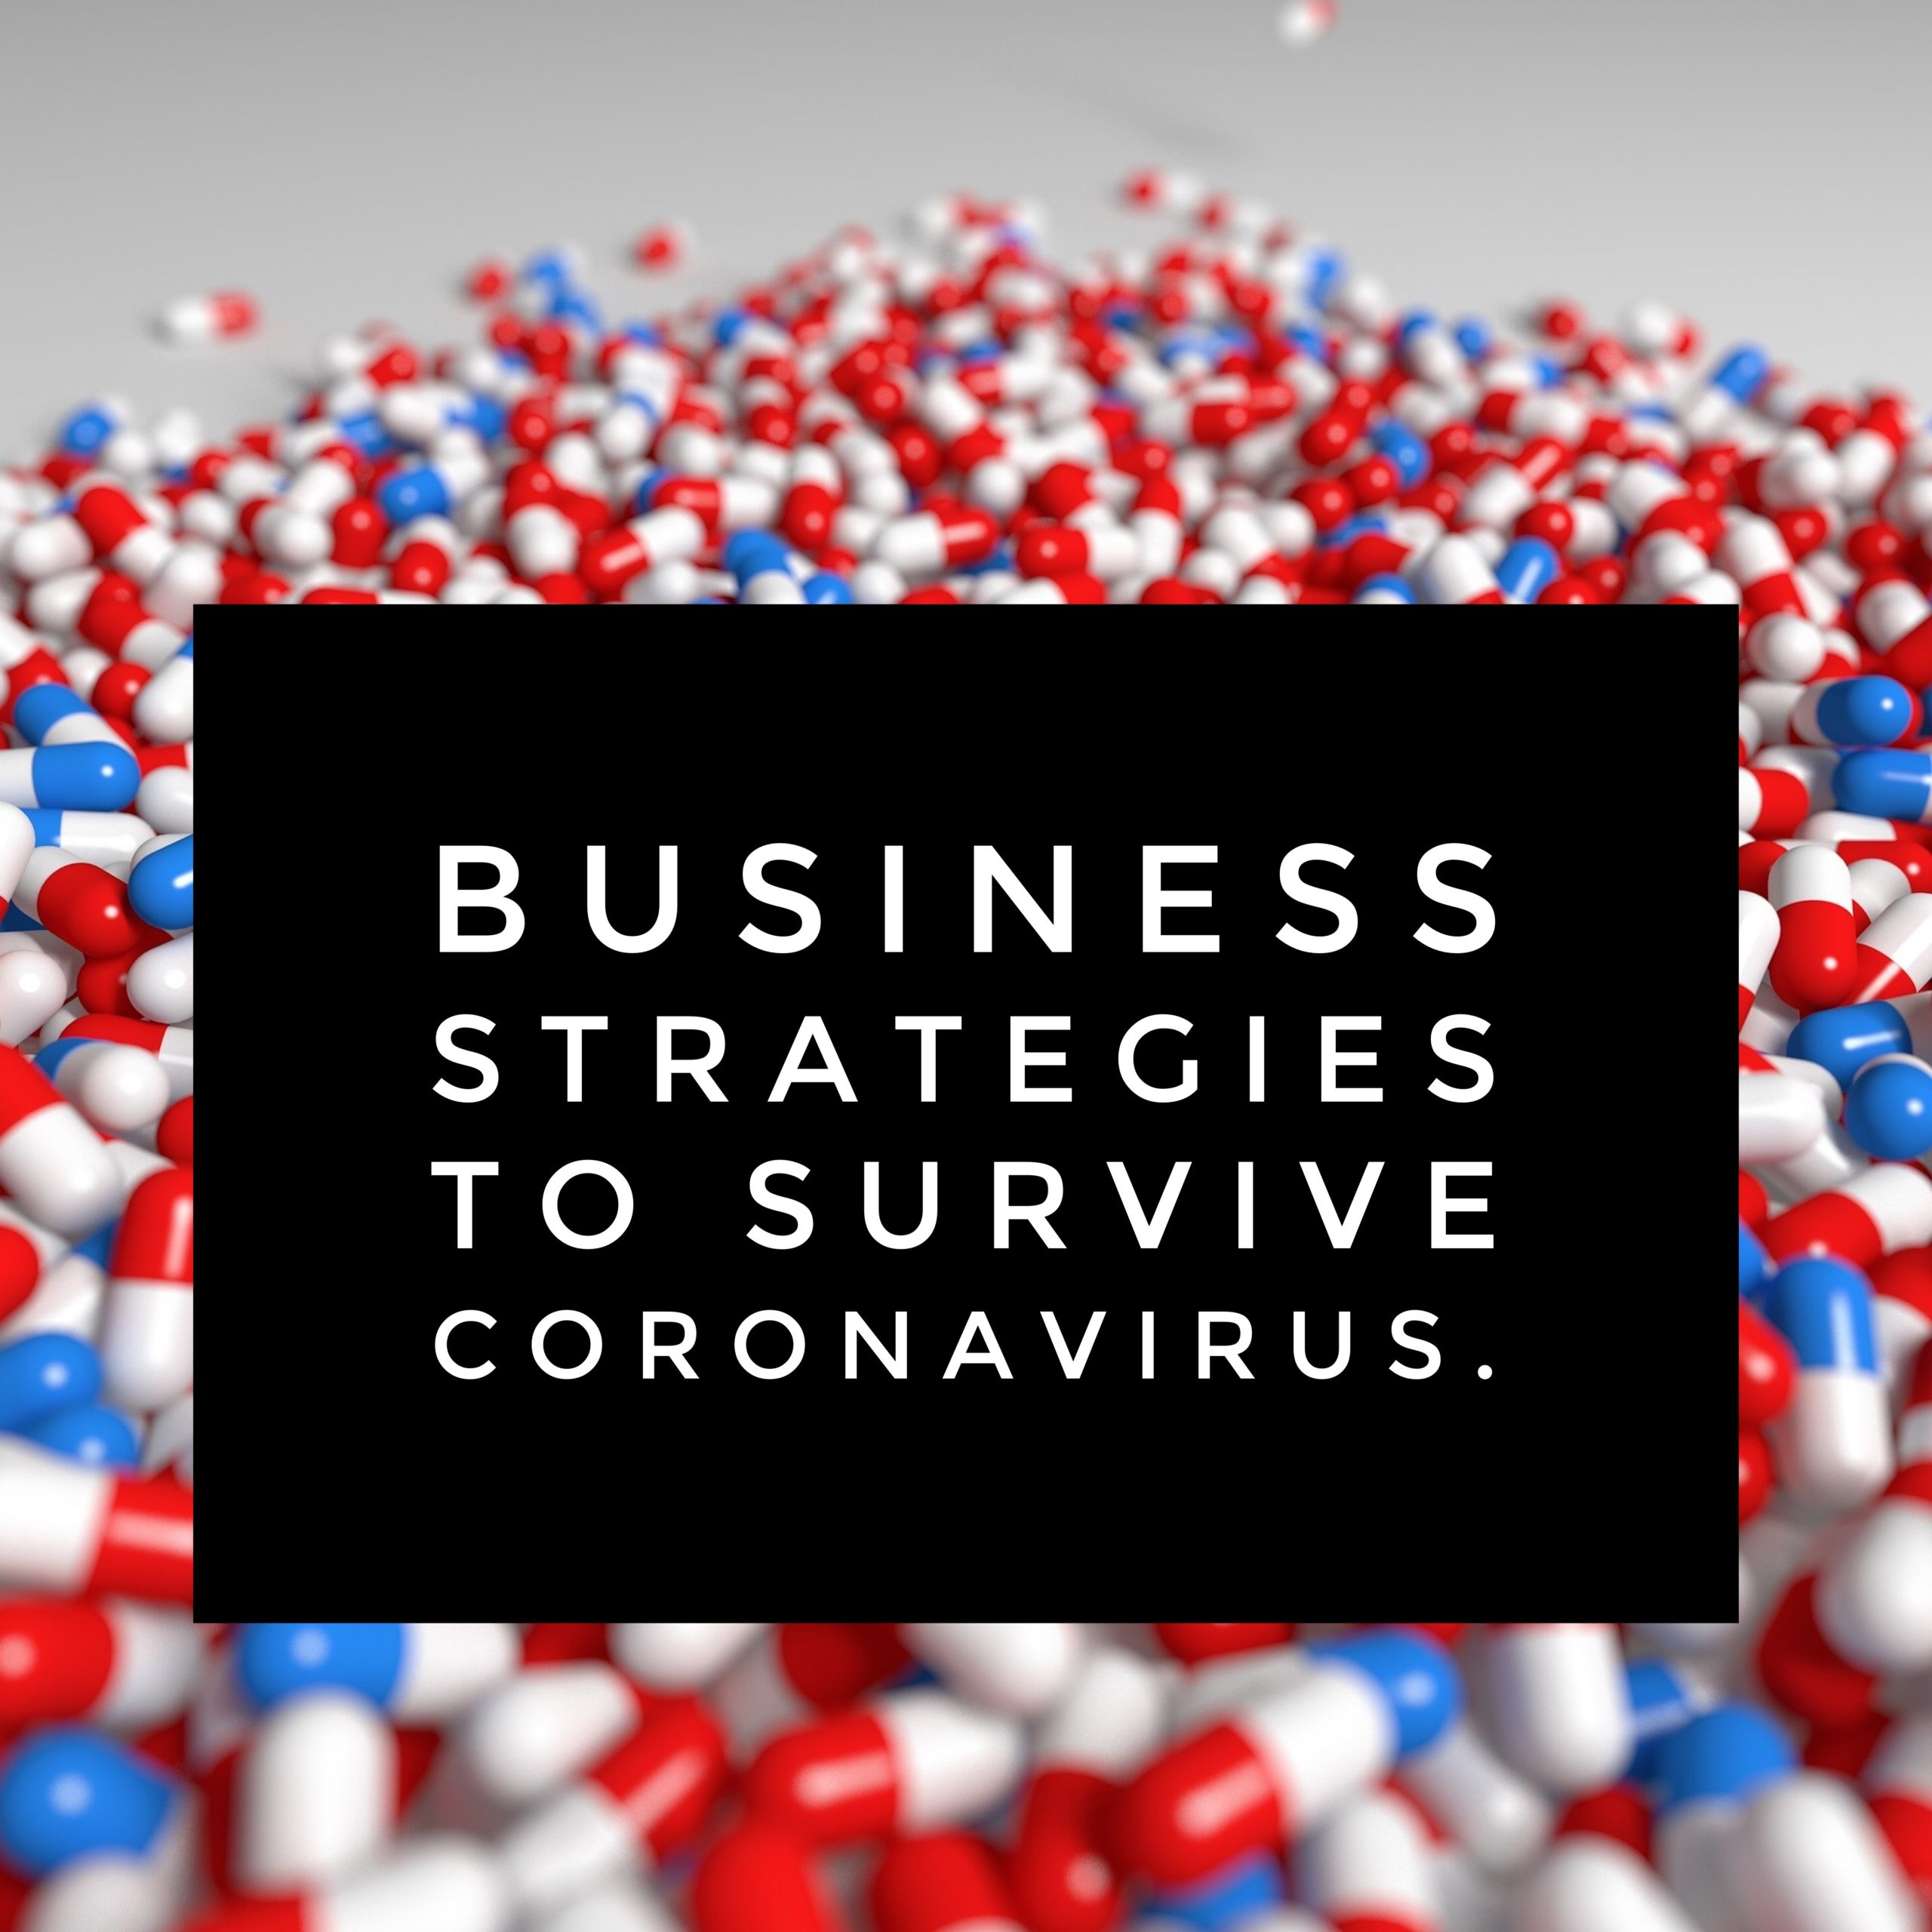 Coronavirus Business Strategies